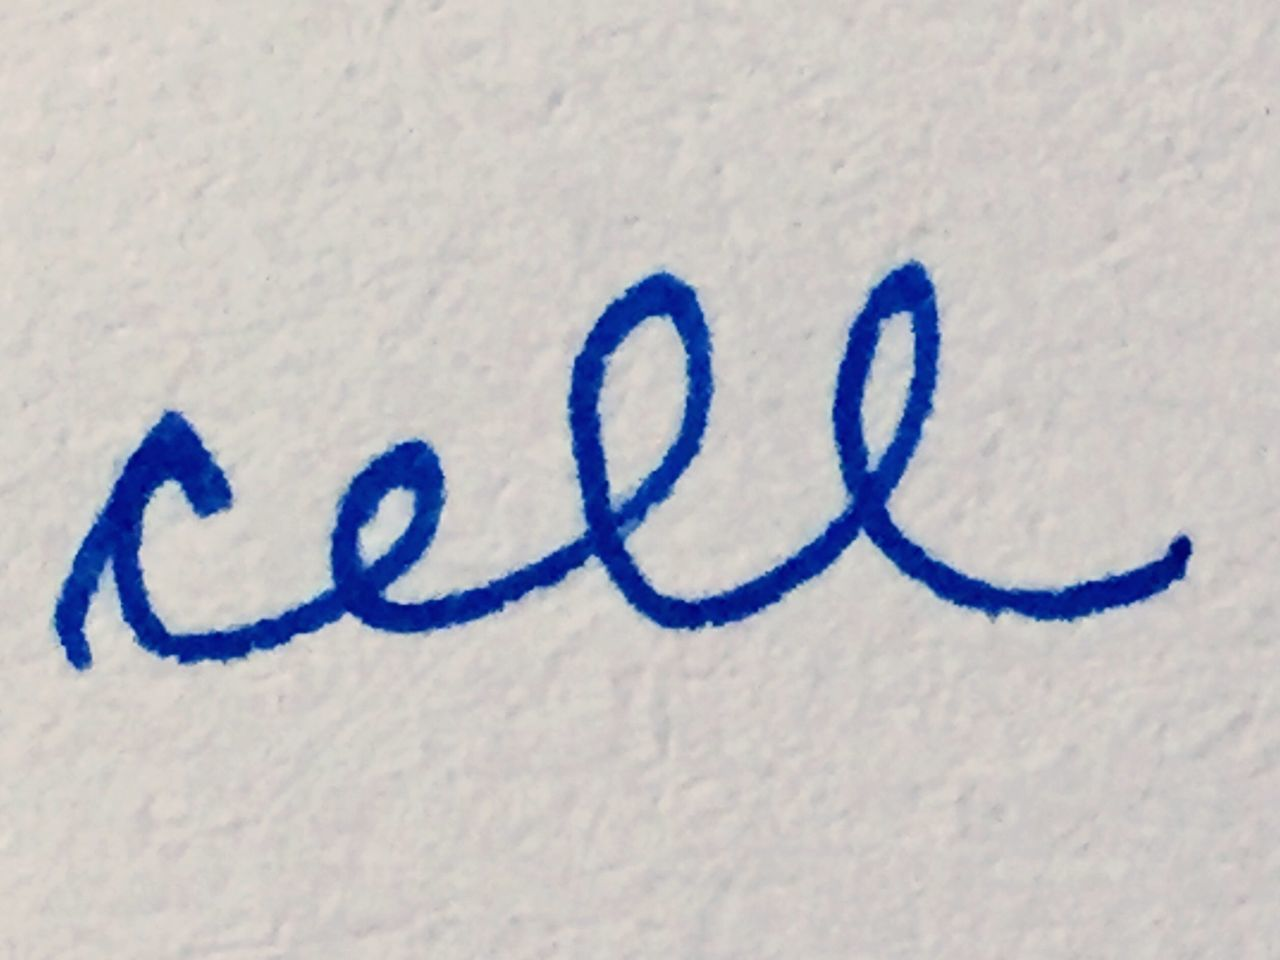 Deceptively Simple Handwriting  Details Of My Life EyeEm Macro